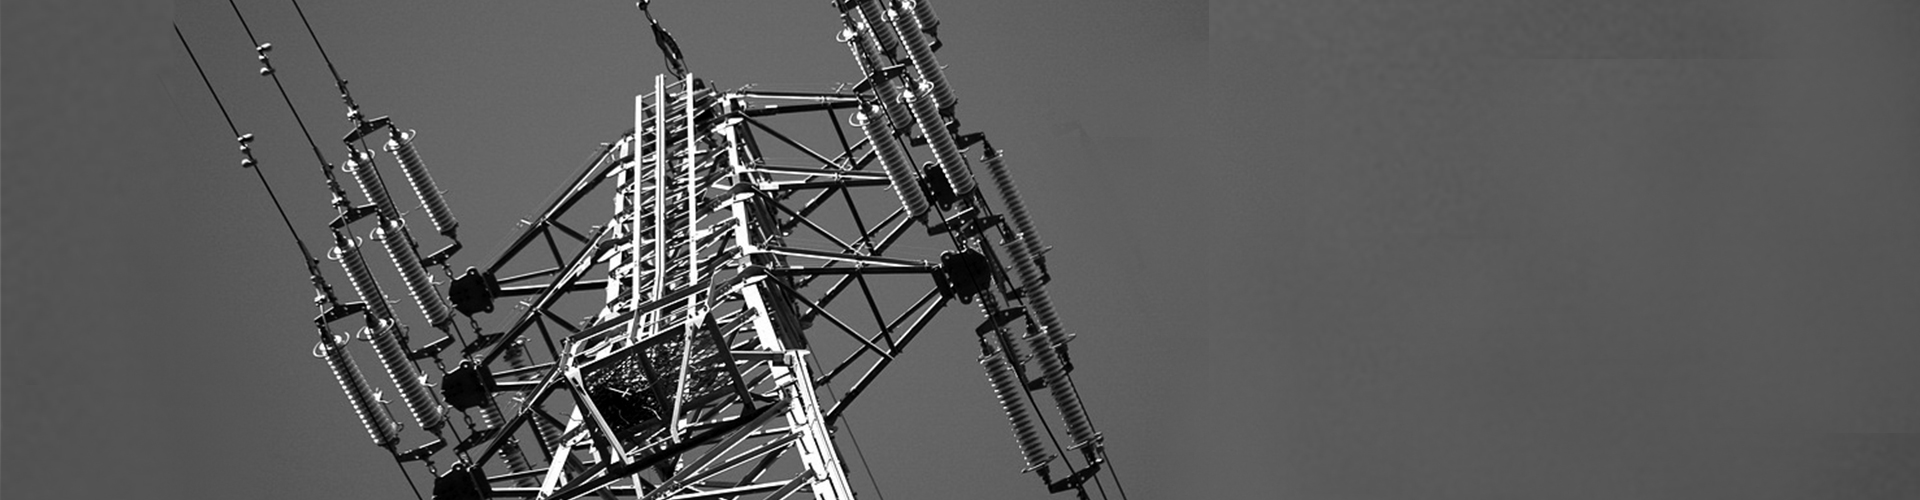 Transmission Tower Anchors